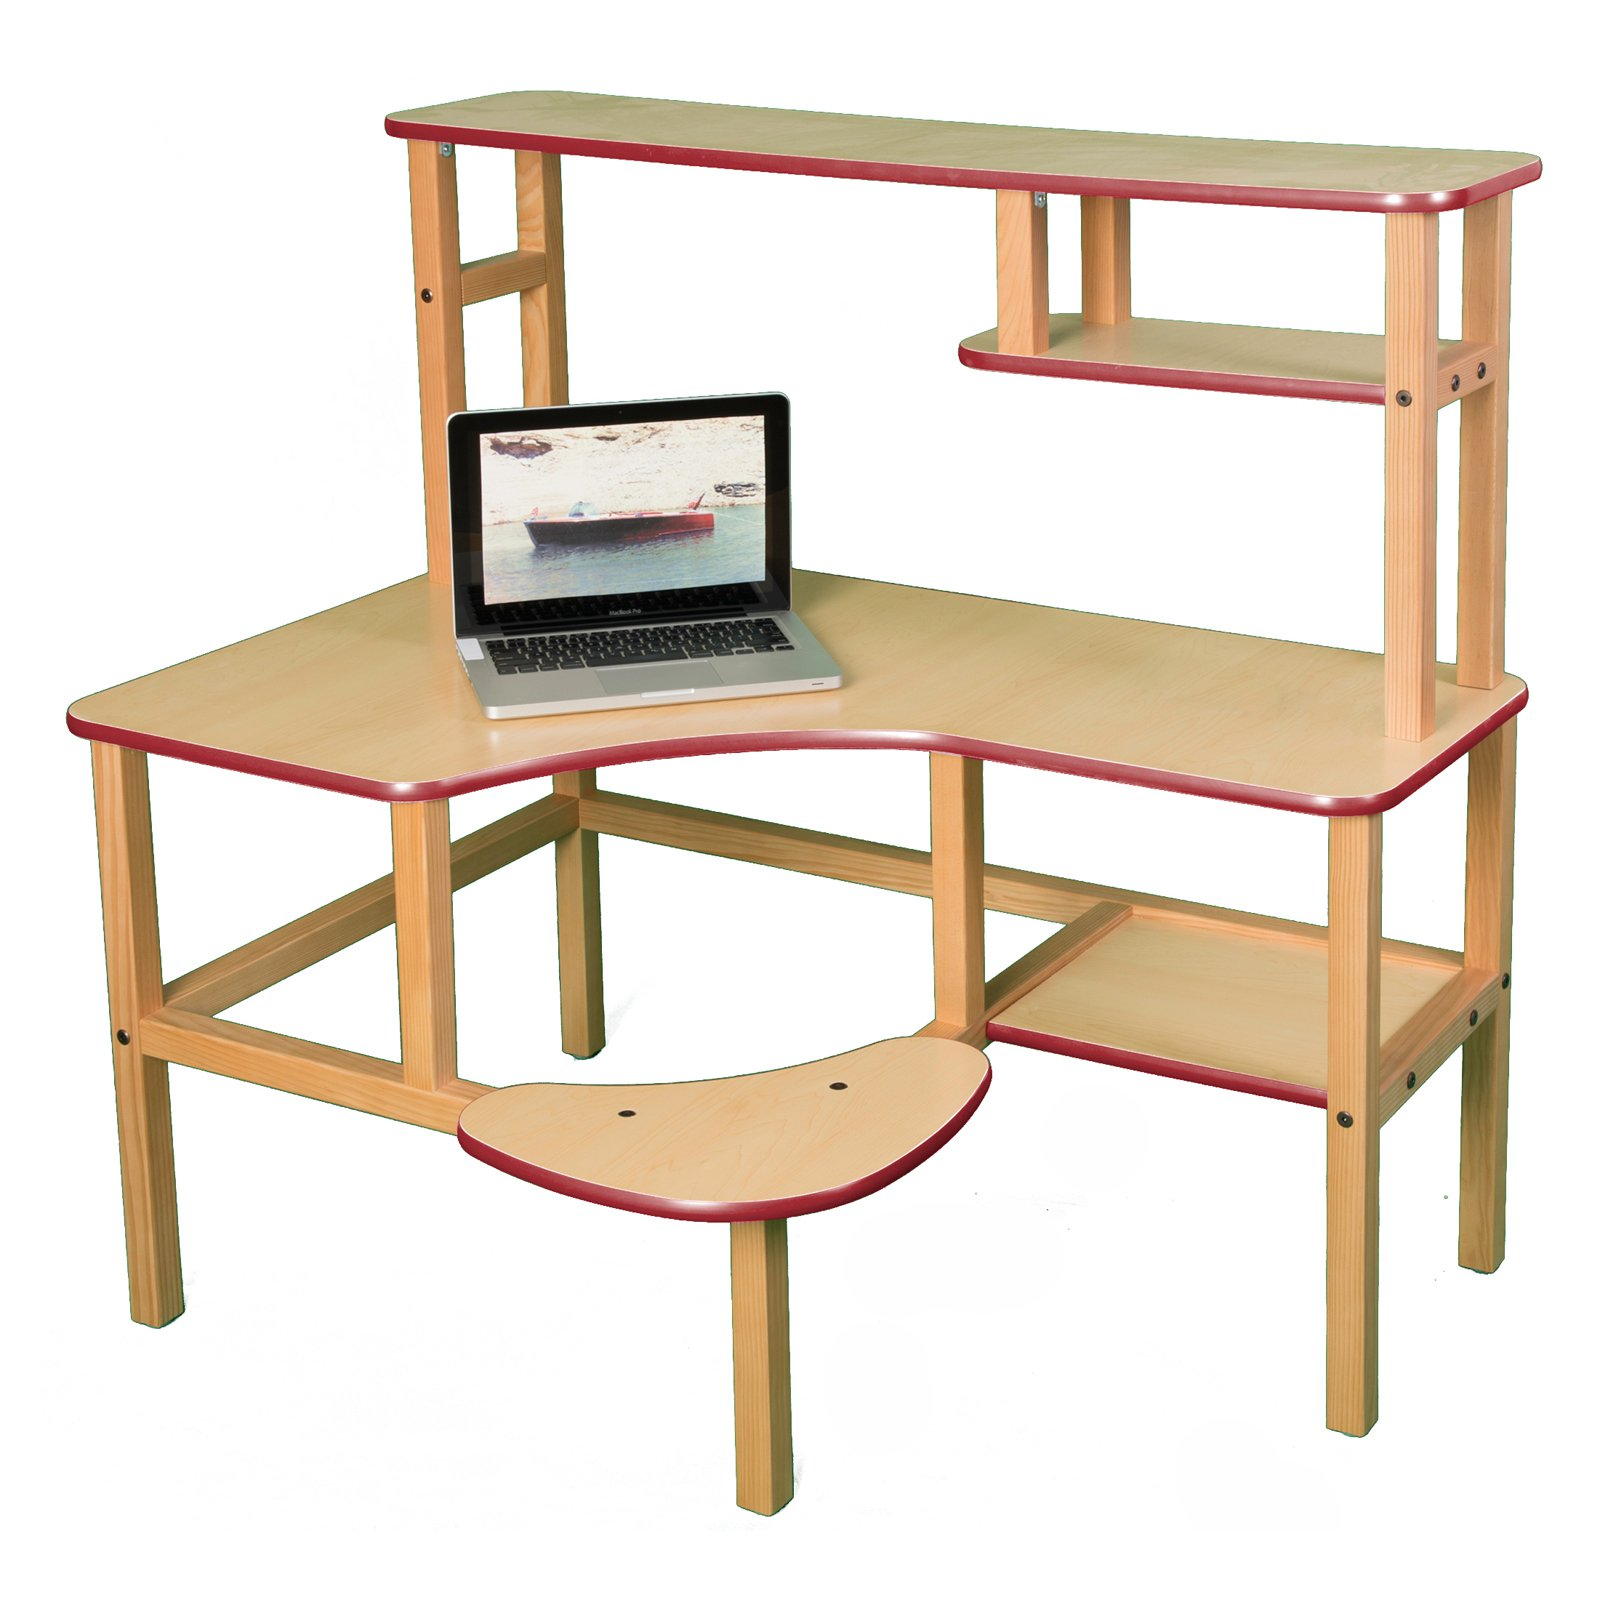 Wild Zoo Pre-School Computer Desk with Optional Hutch and Printer Stand - Maple